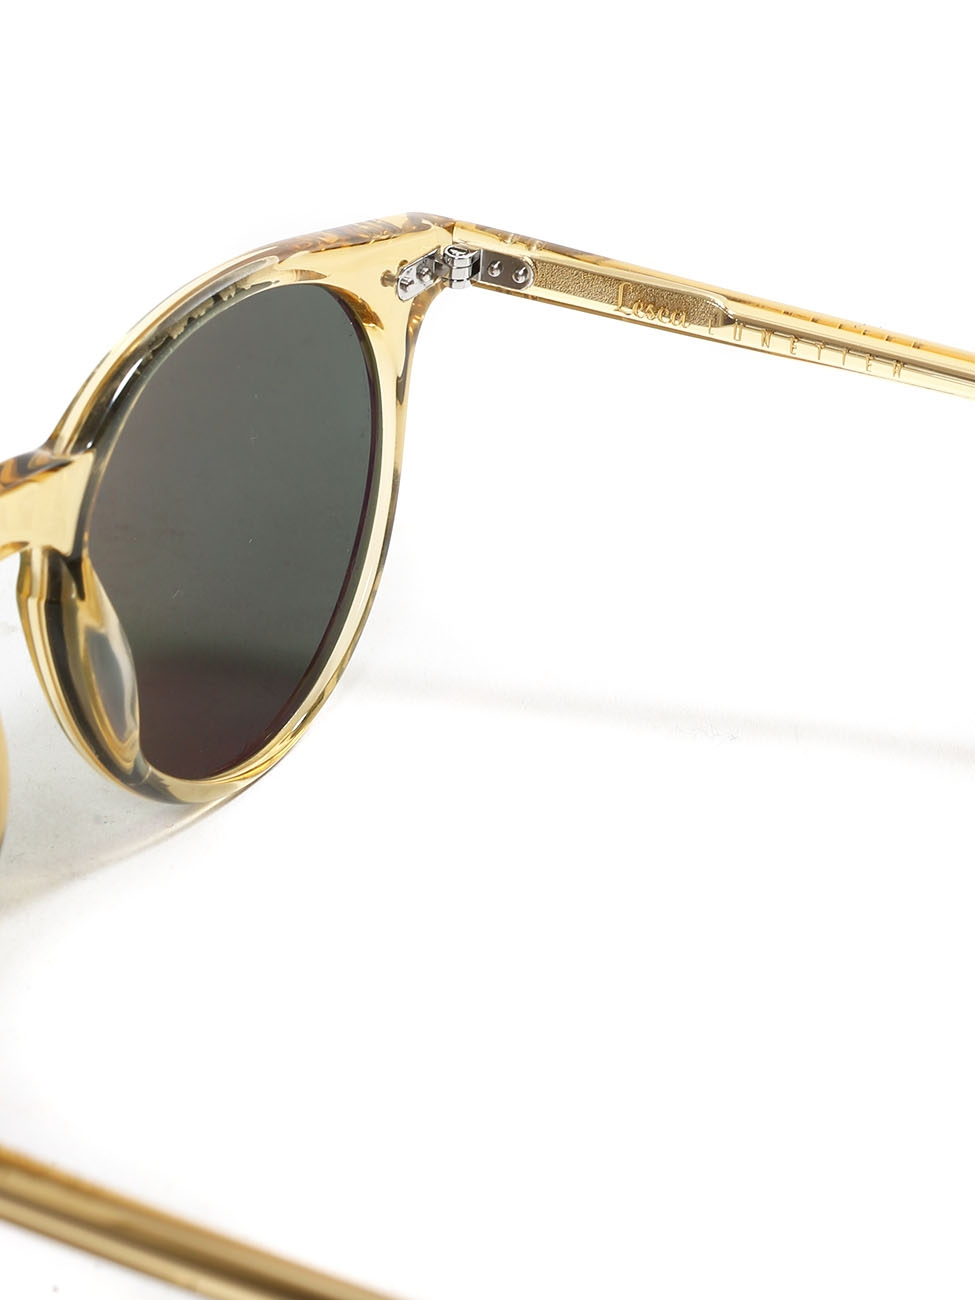 edc275076049 Louise Paris - LESCA LUNETIER P9 round luxury amber yellow frame sunglasses  with bottle green lenses Retail price €260 NEW